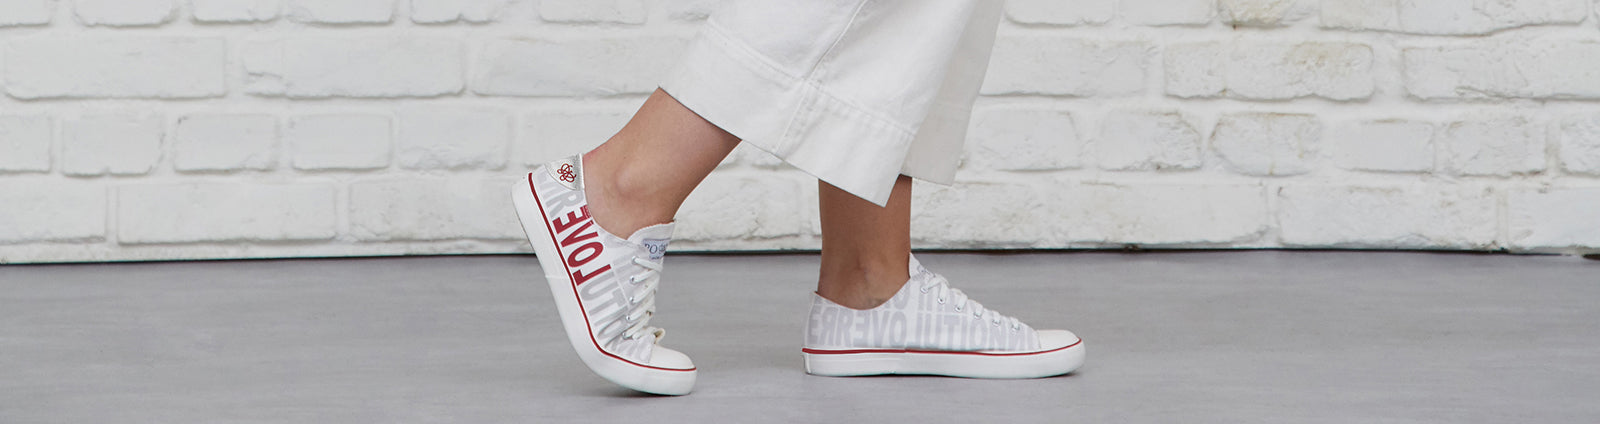 po-zu ethical sneakers spring summer 2019